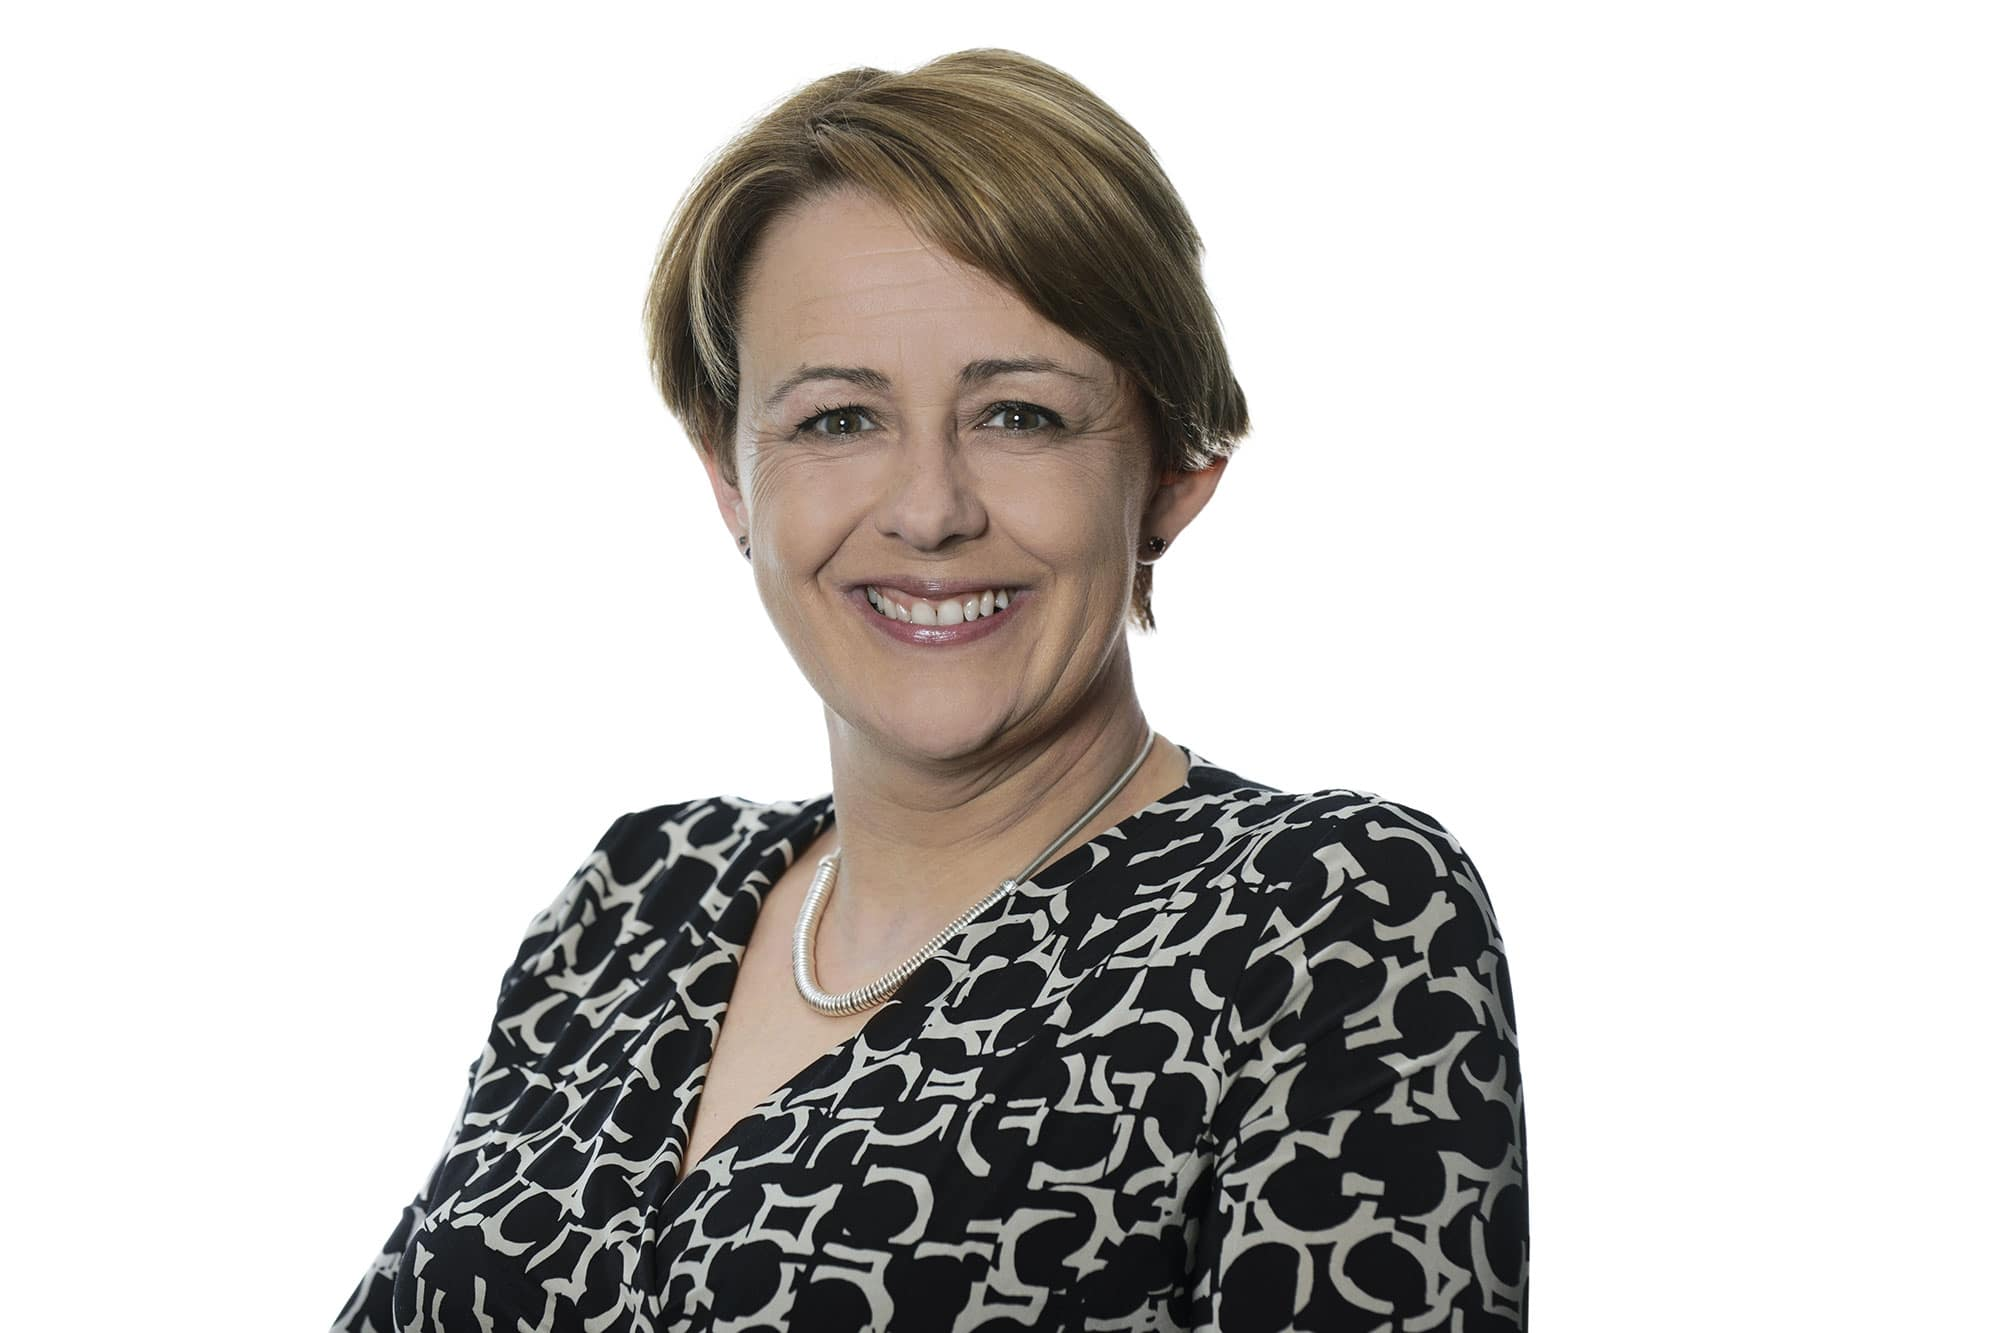 Baroness Tanni Grey-Thompson urges MPs to support gyms and leisure facilities remaining open as Westminster debate confirmed